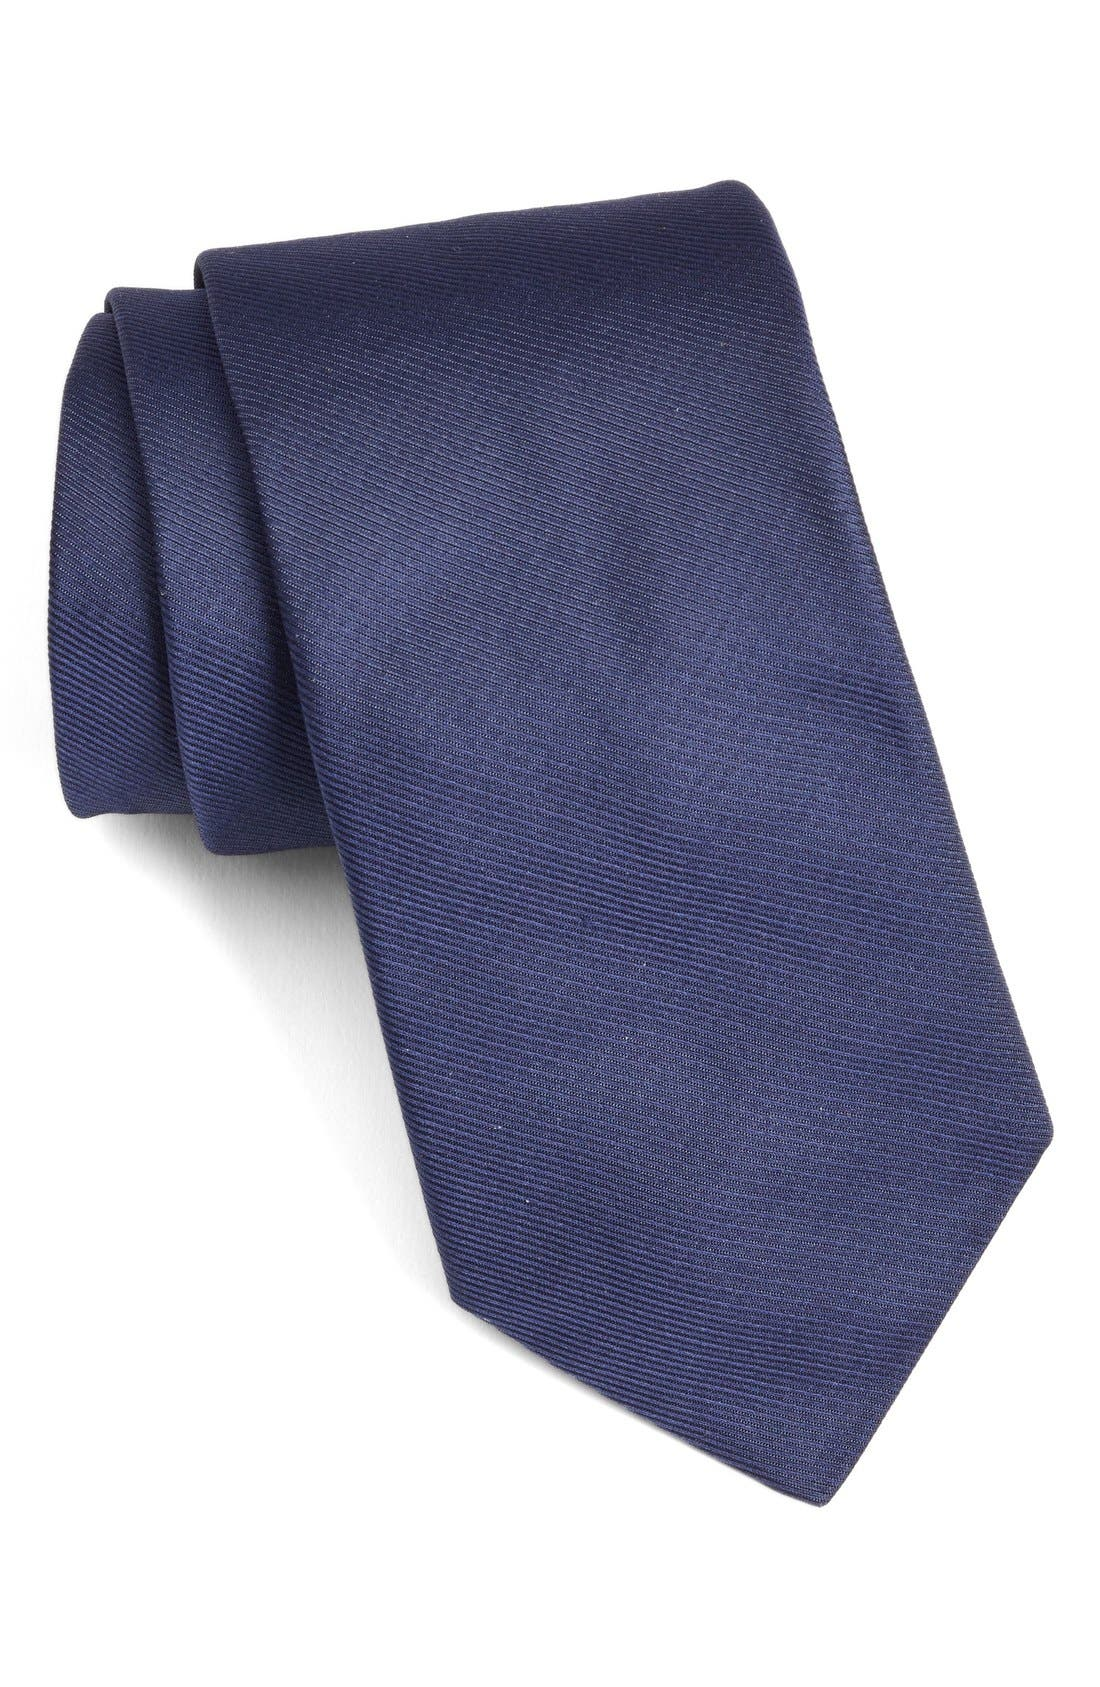 Alternate Image 1 Selected - Ted Baker London Solid Woven Silk Tie